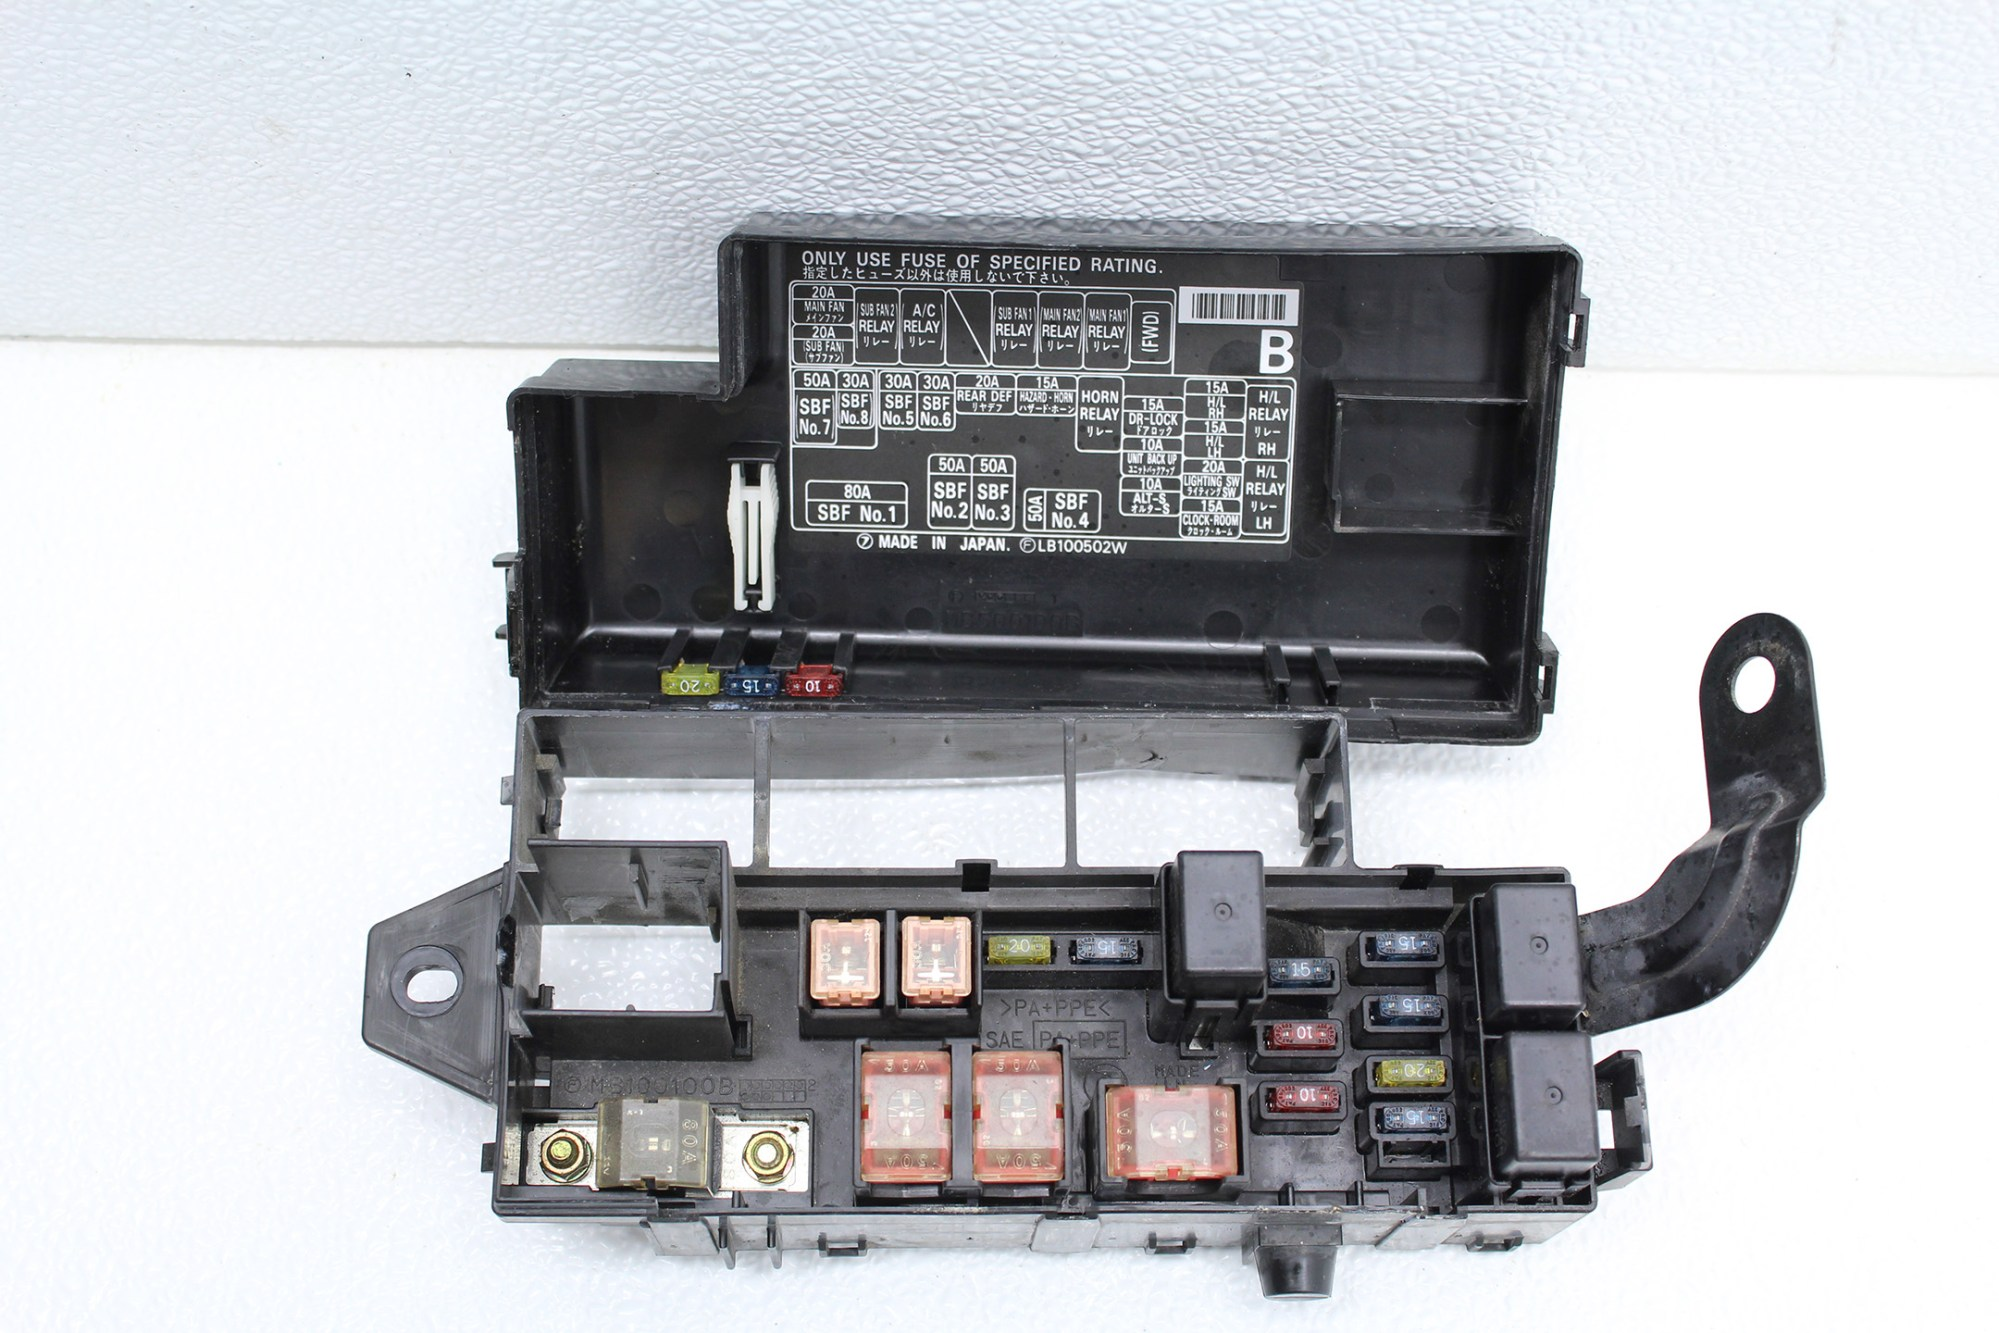 hight resolution of 1998 2001 subaru impreza 2 5 rs gc8 engine fuse box relay 2002 subaru impreza 2001